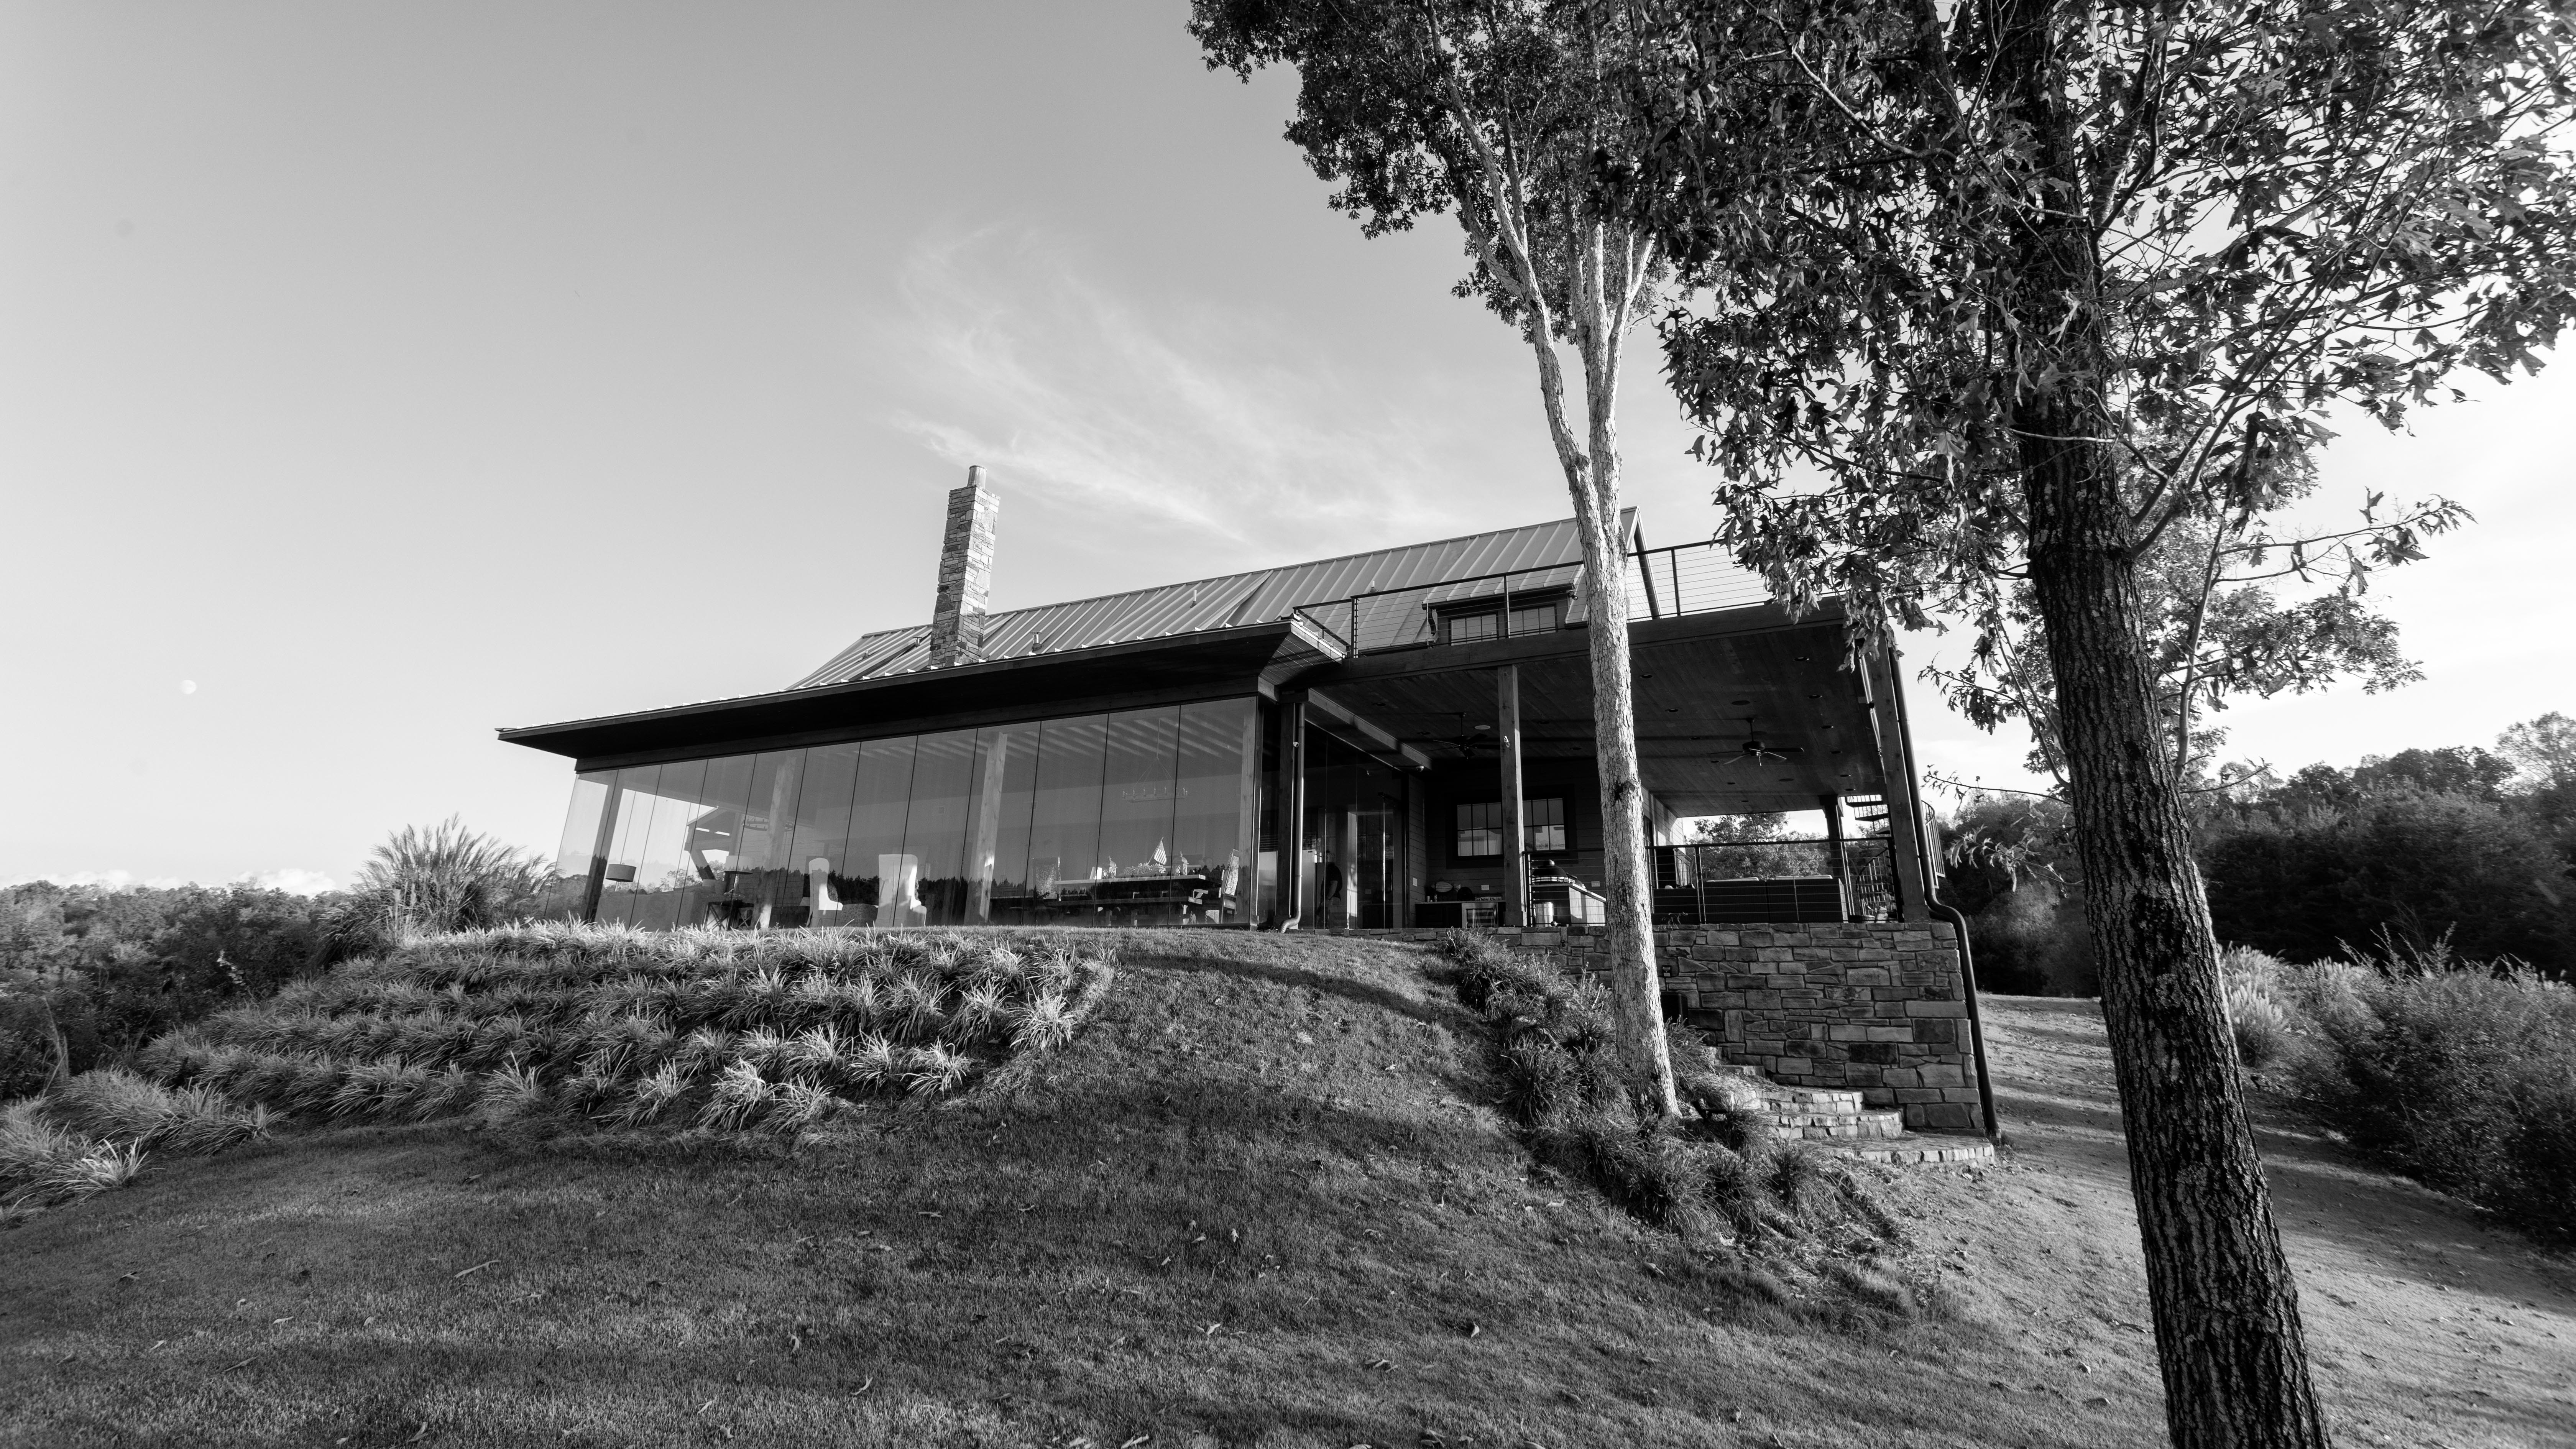 barn smith lake exteriors one bw (1 of 5